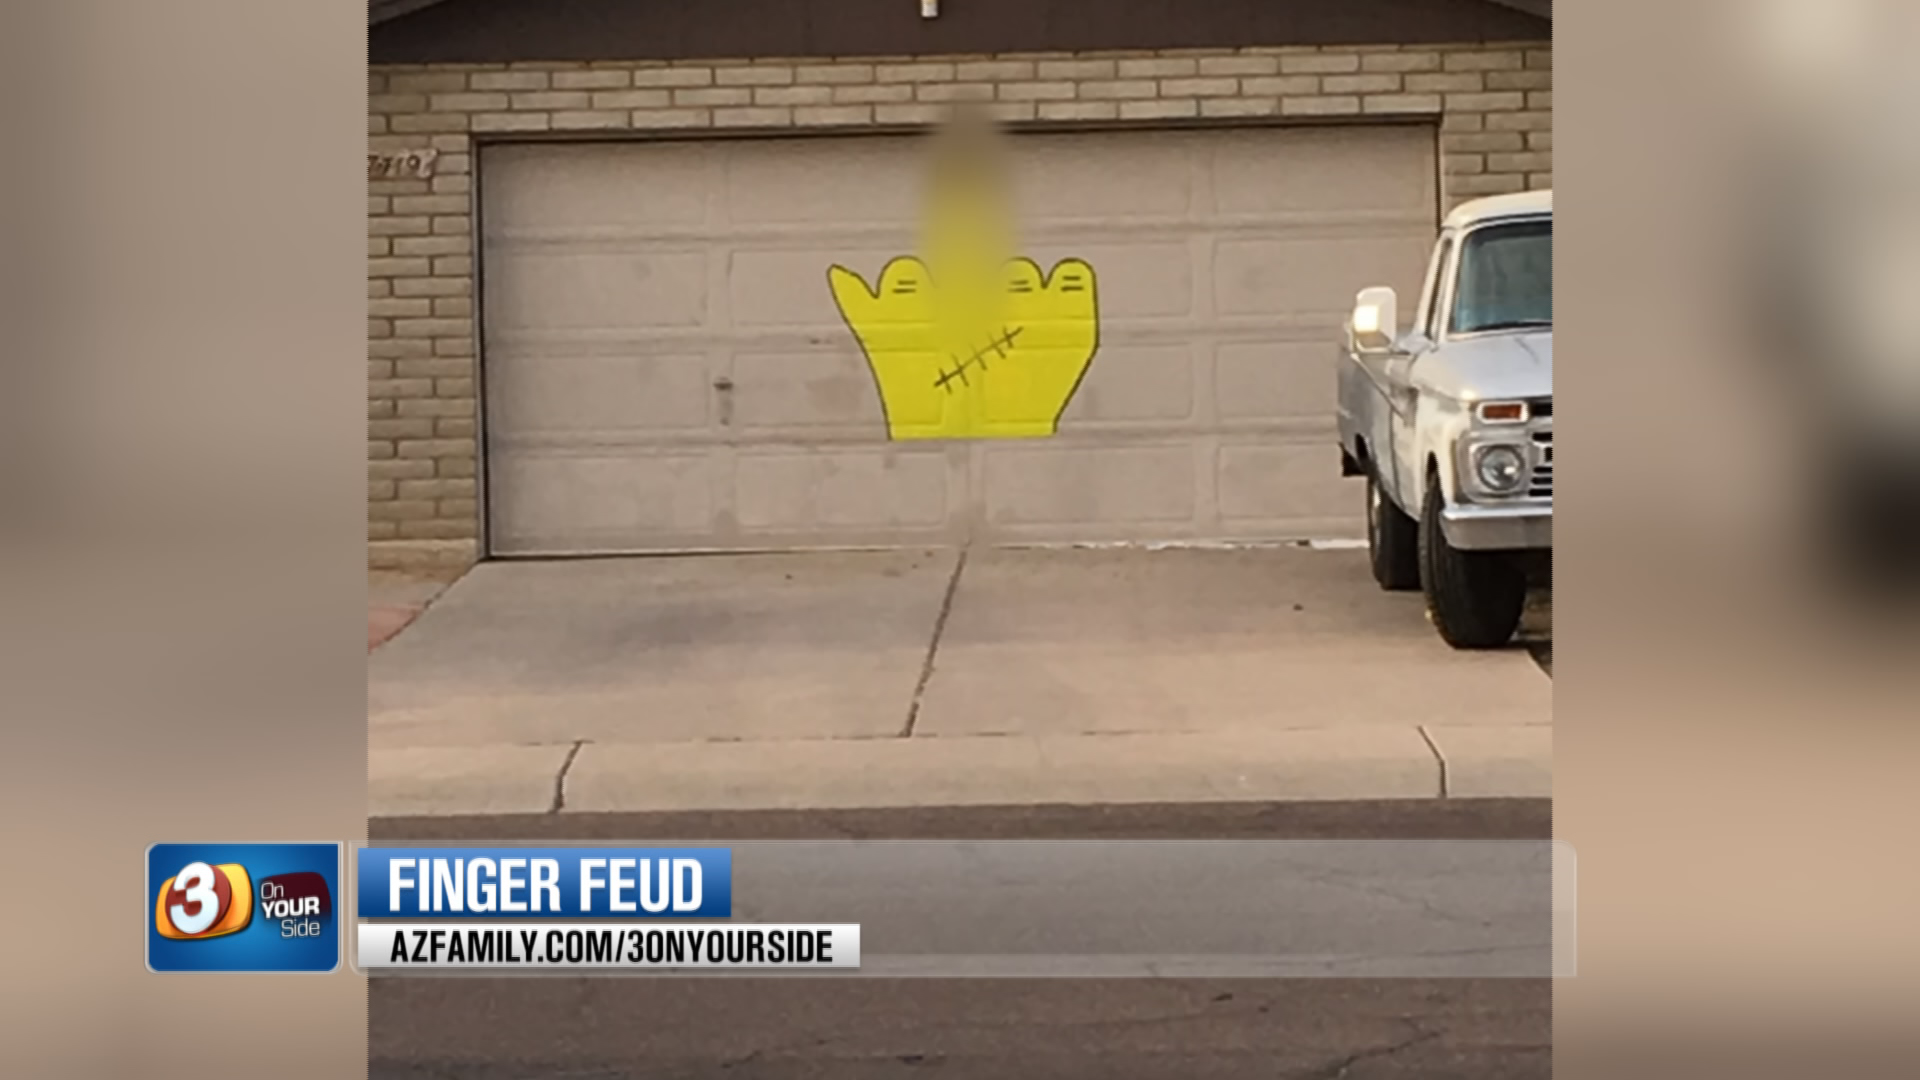 According to Ernie Leas, he painted a giant middle finger on the front of is garage door because of an ongoing feud with his neighbors that started 20 years ago. (Source: 3TV/CBS 5)